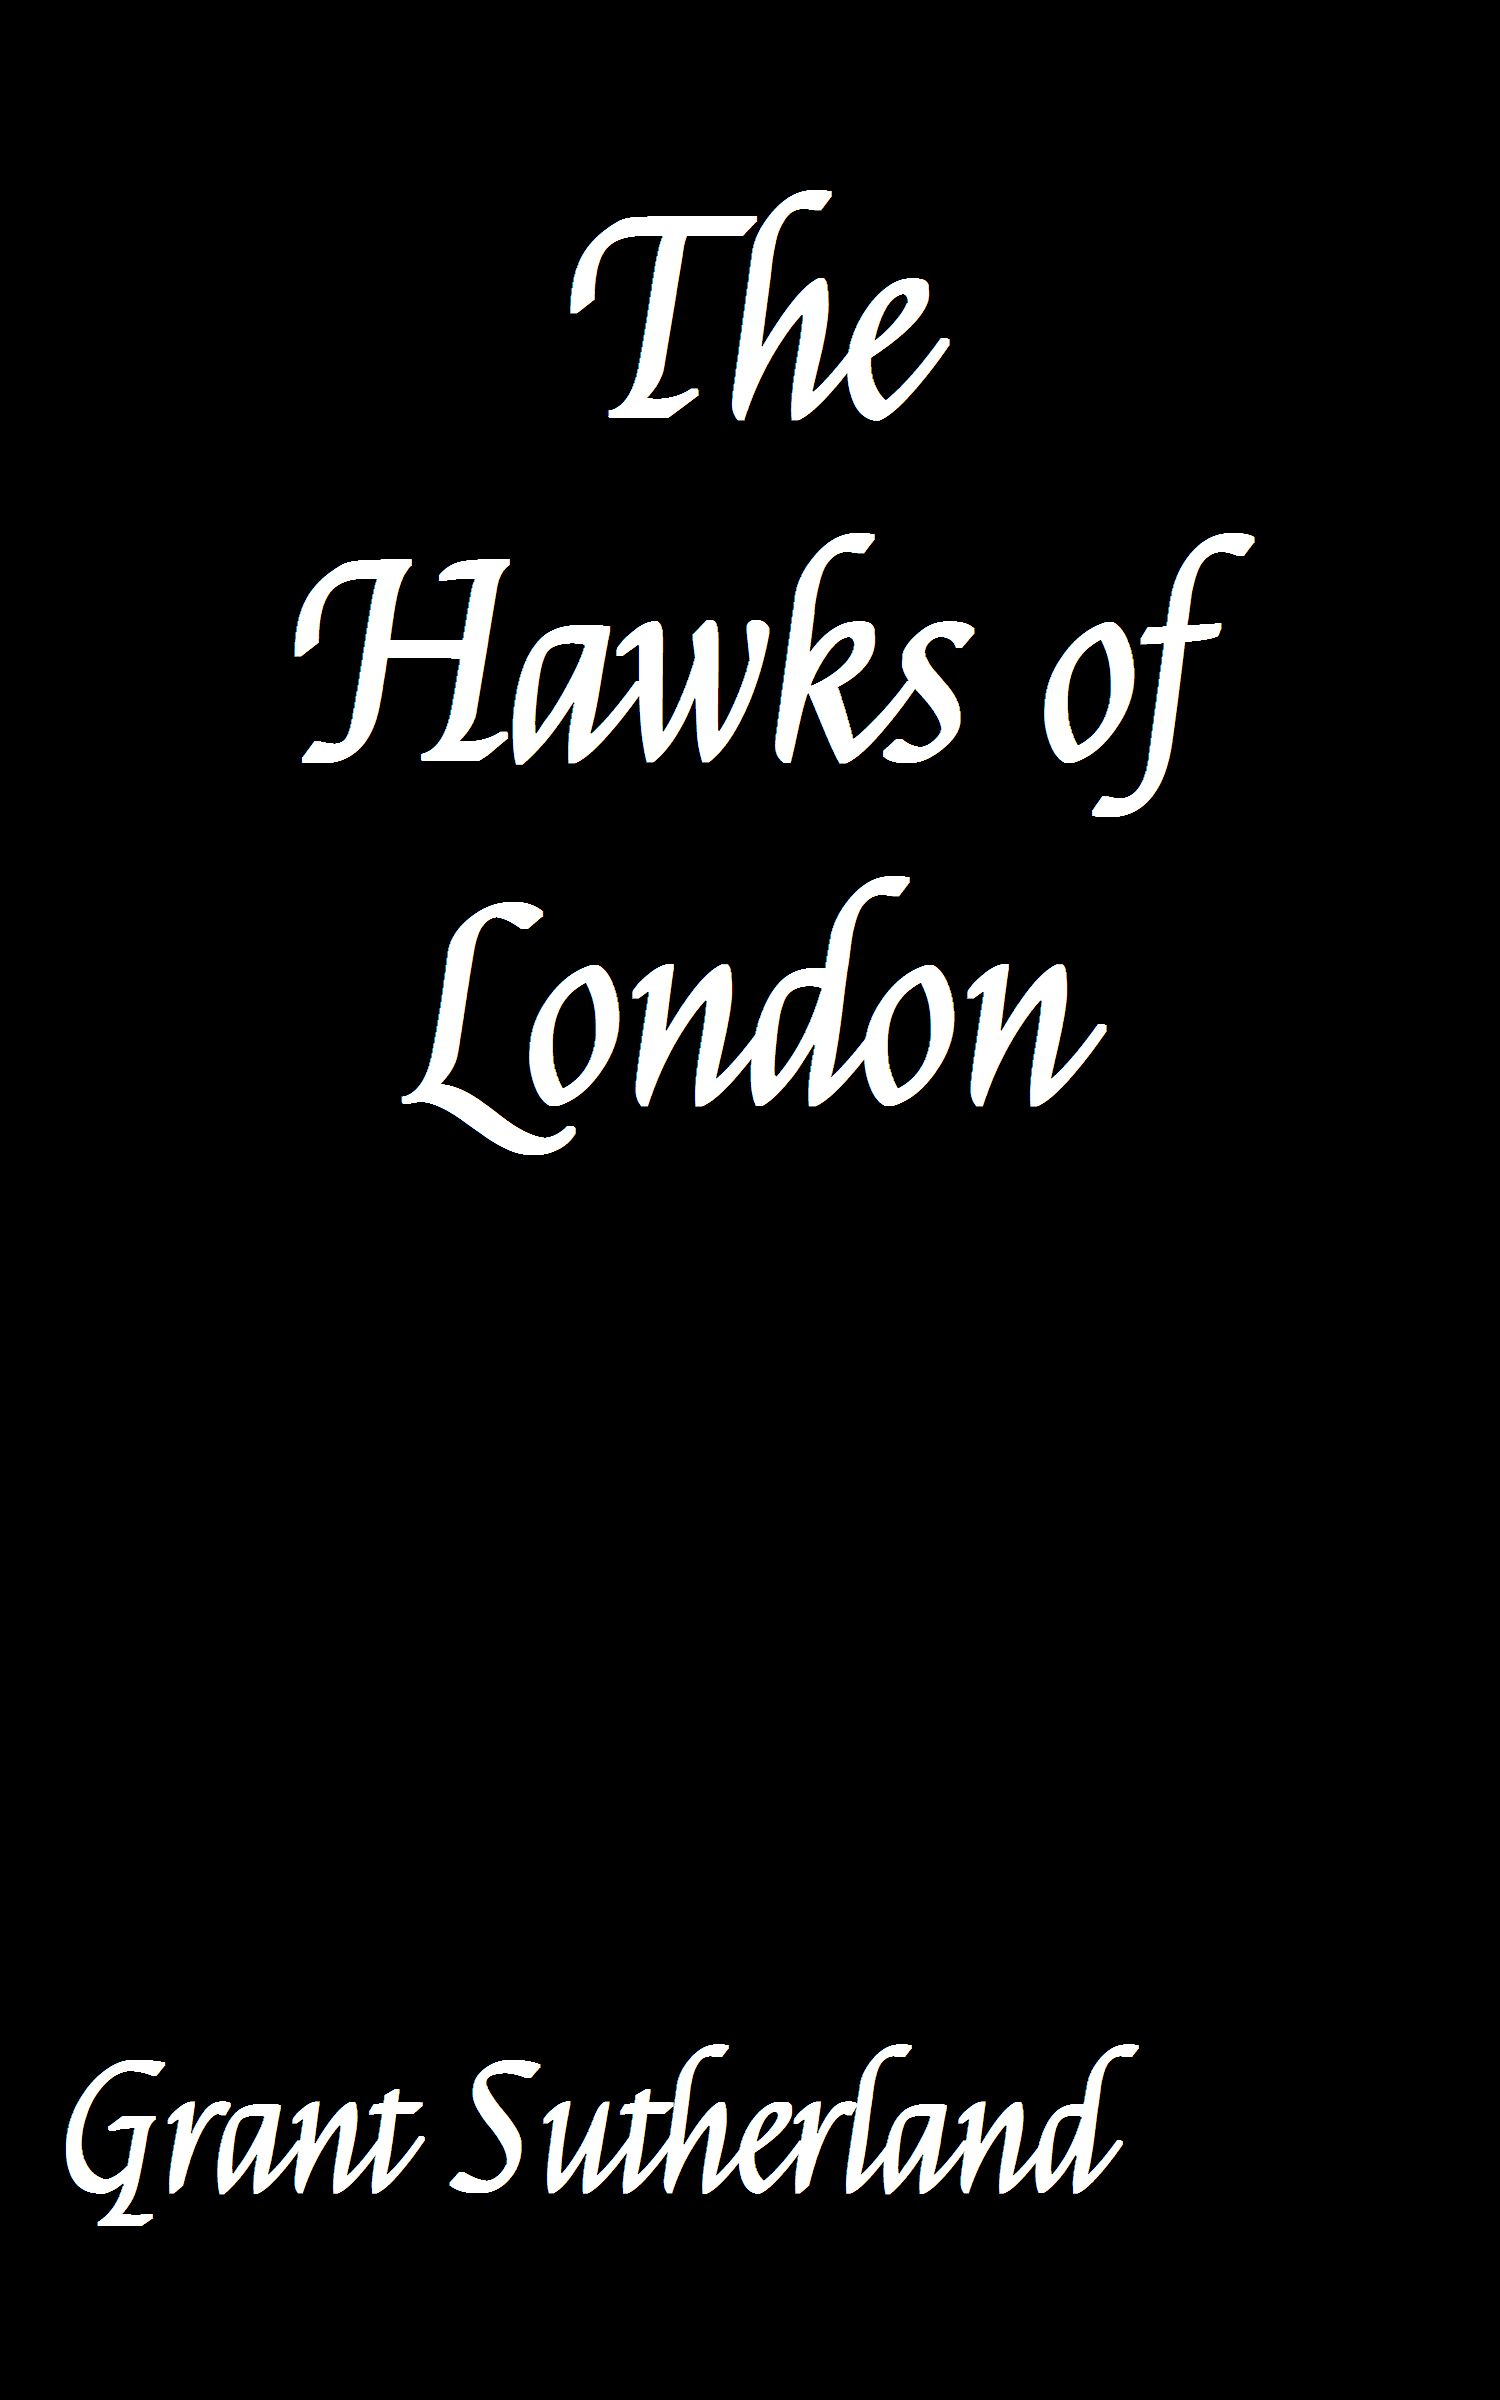 The Hawks of London